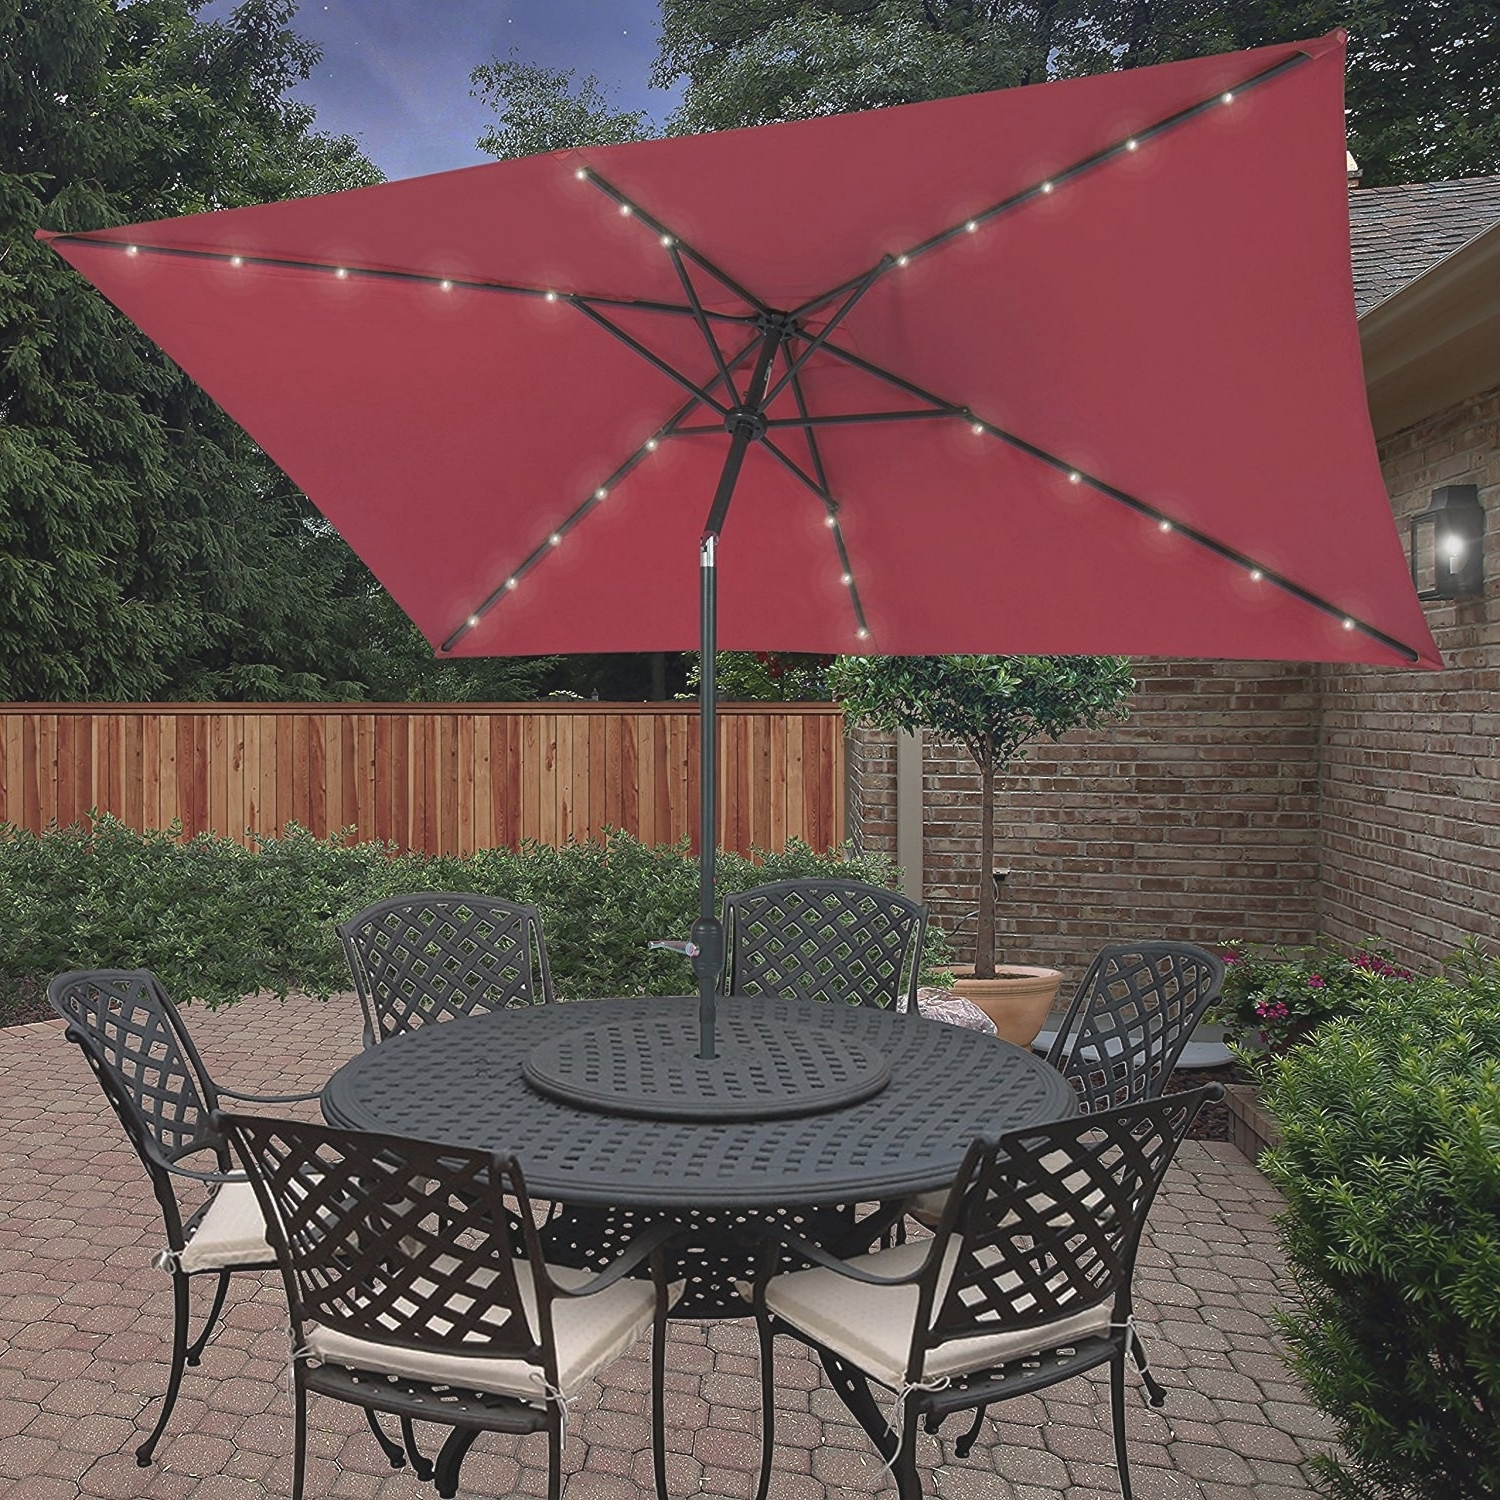 Recent Comfy Hampton Bay Patio Umbrella With Solar Lights F94X In Creative Intended For Hampton Bay Patio Umbrellas (Gallery 14 of 20)